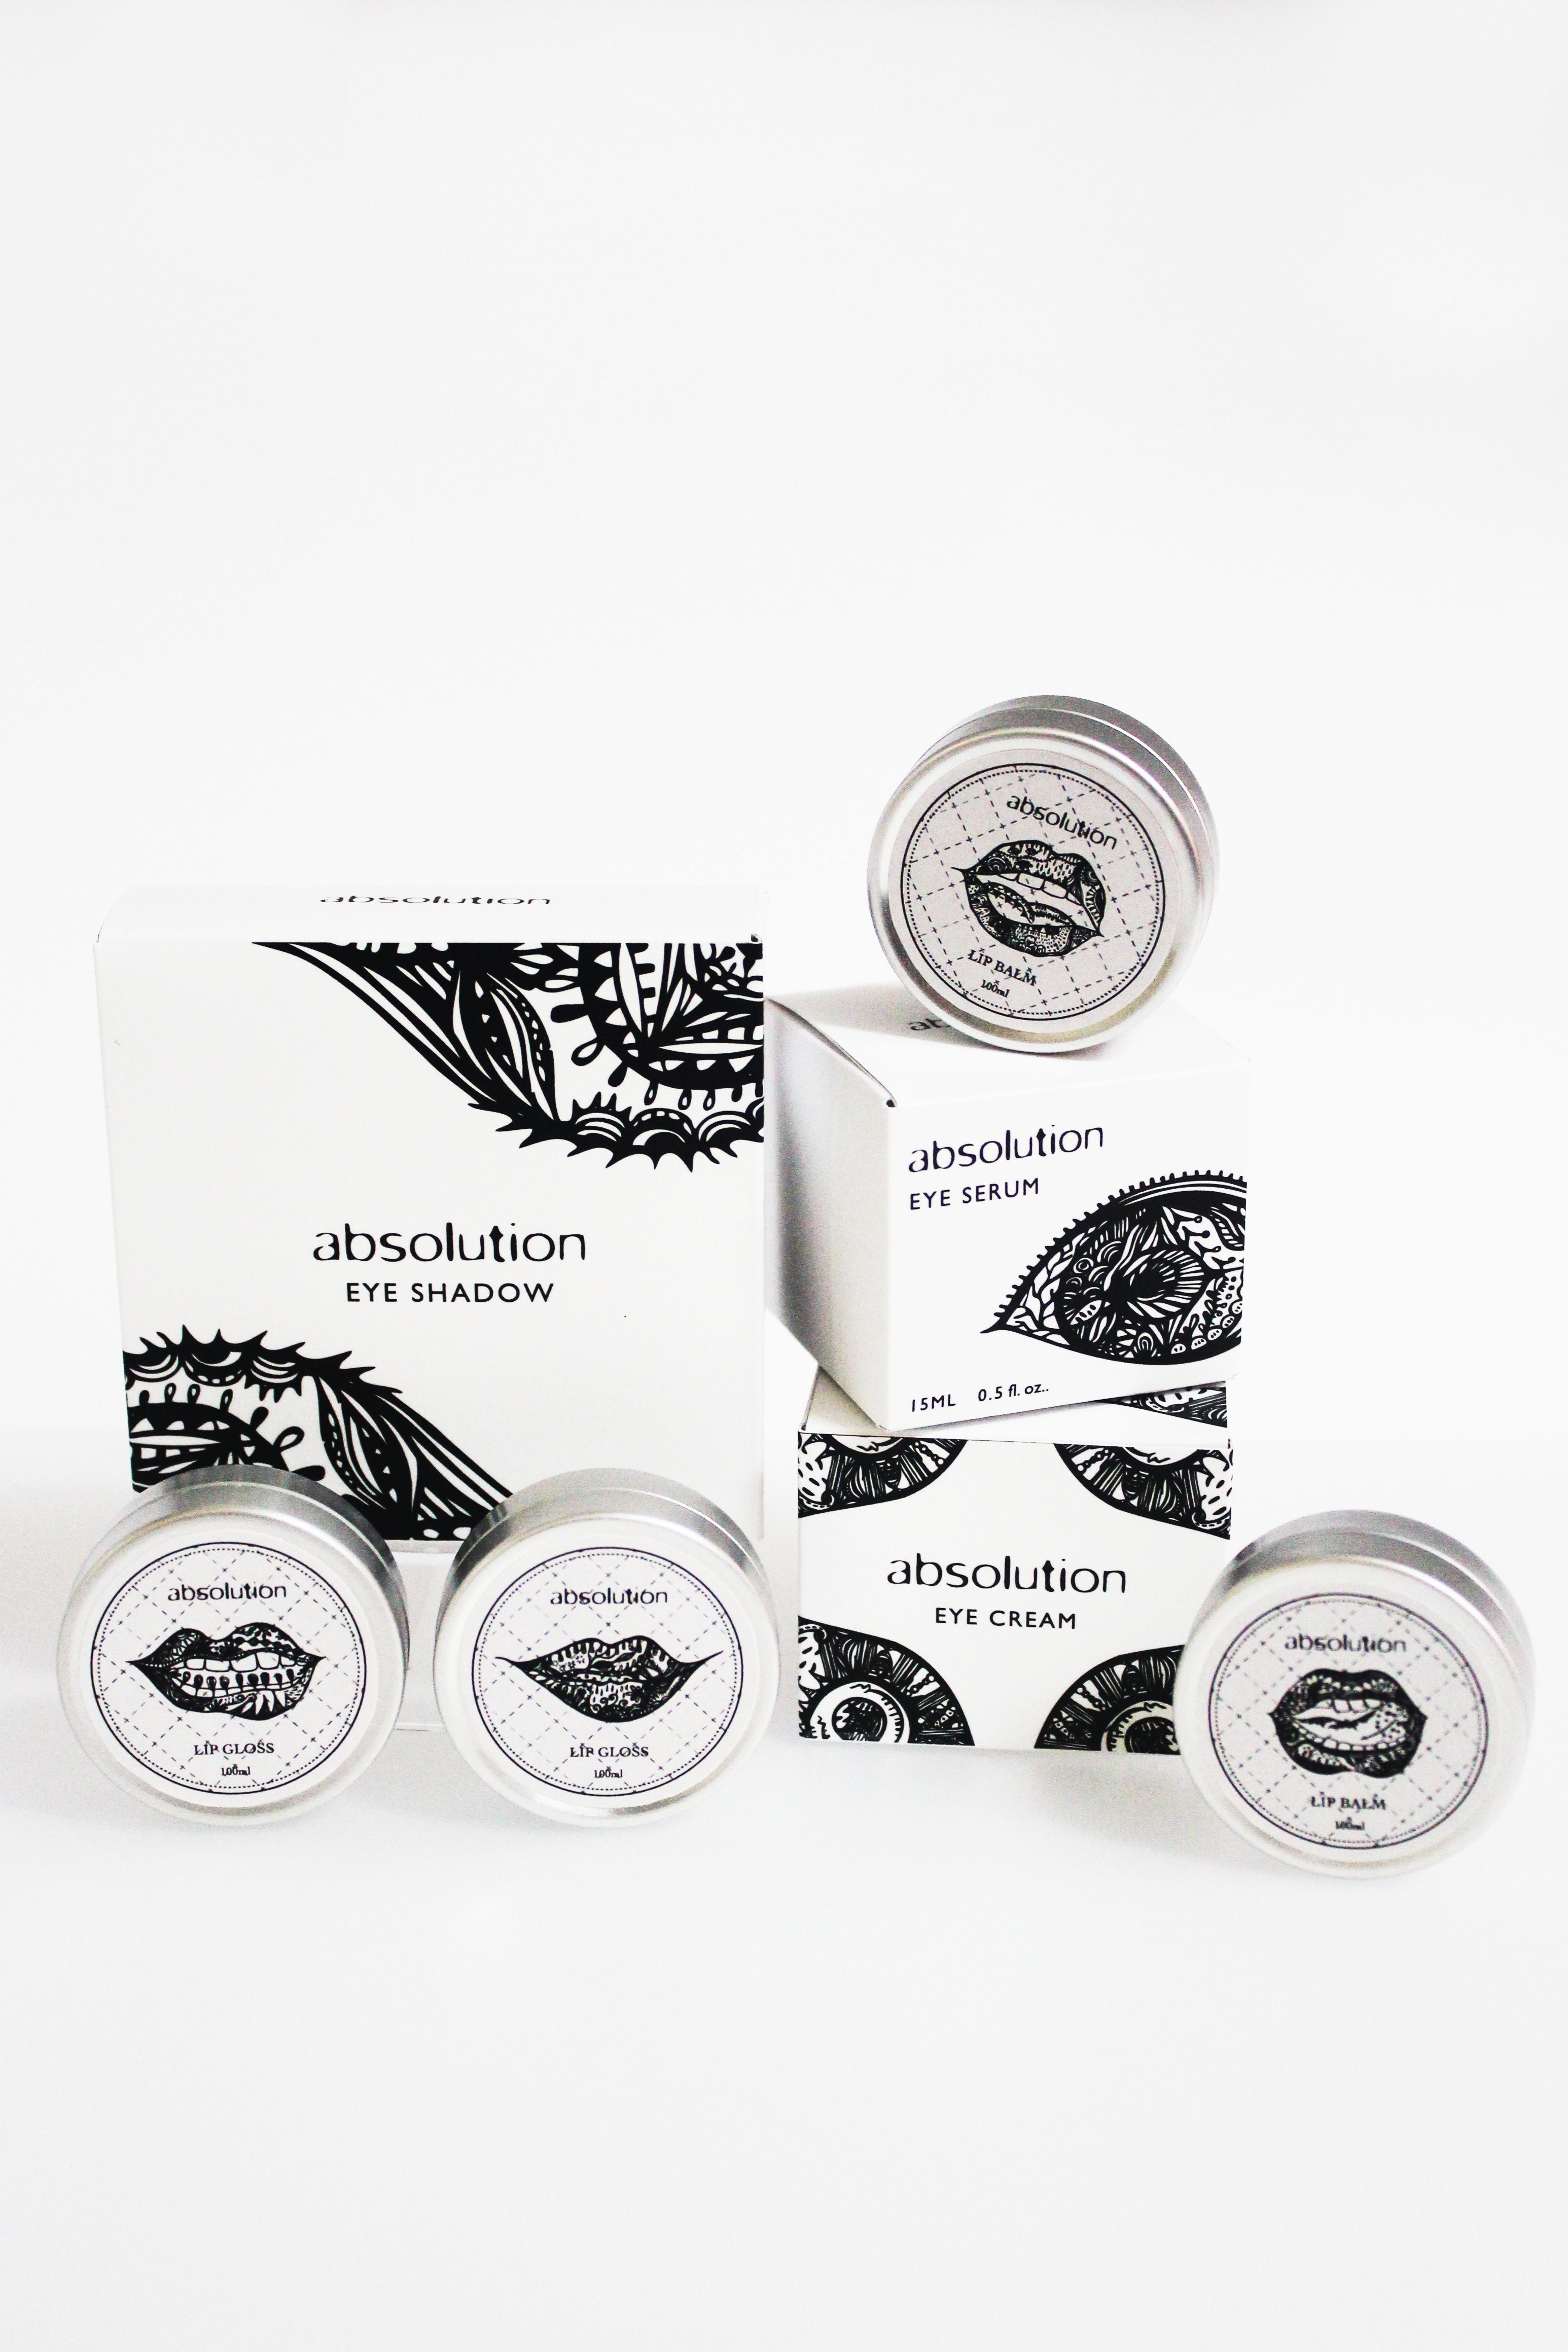 cosmetics packaging design Absolution Cosmetic